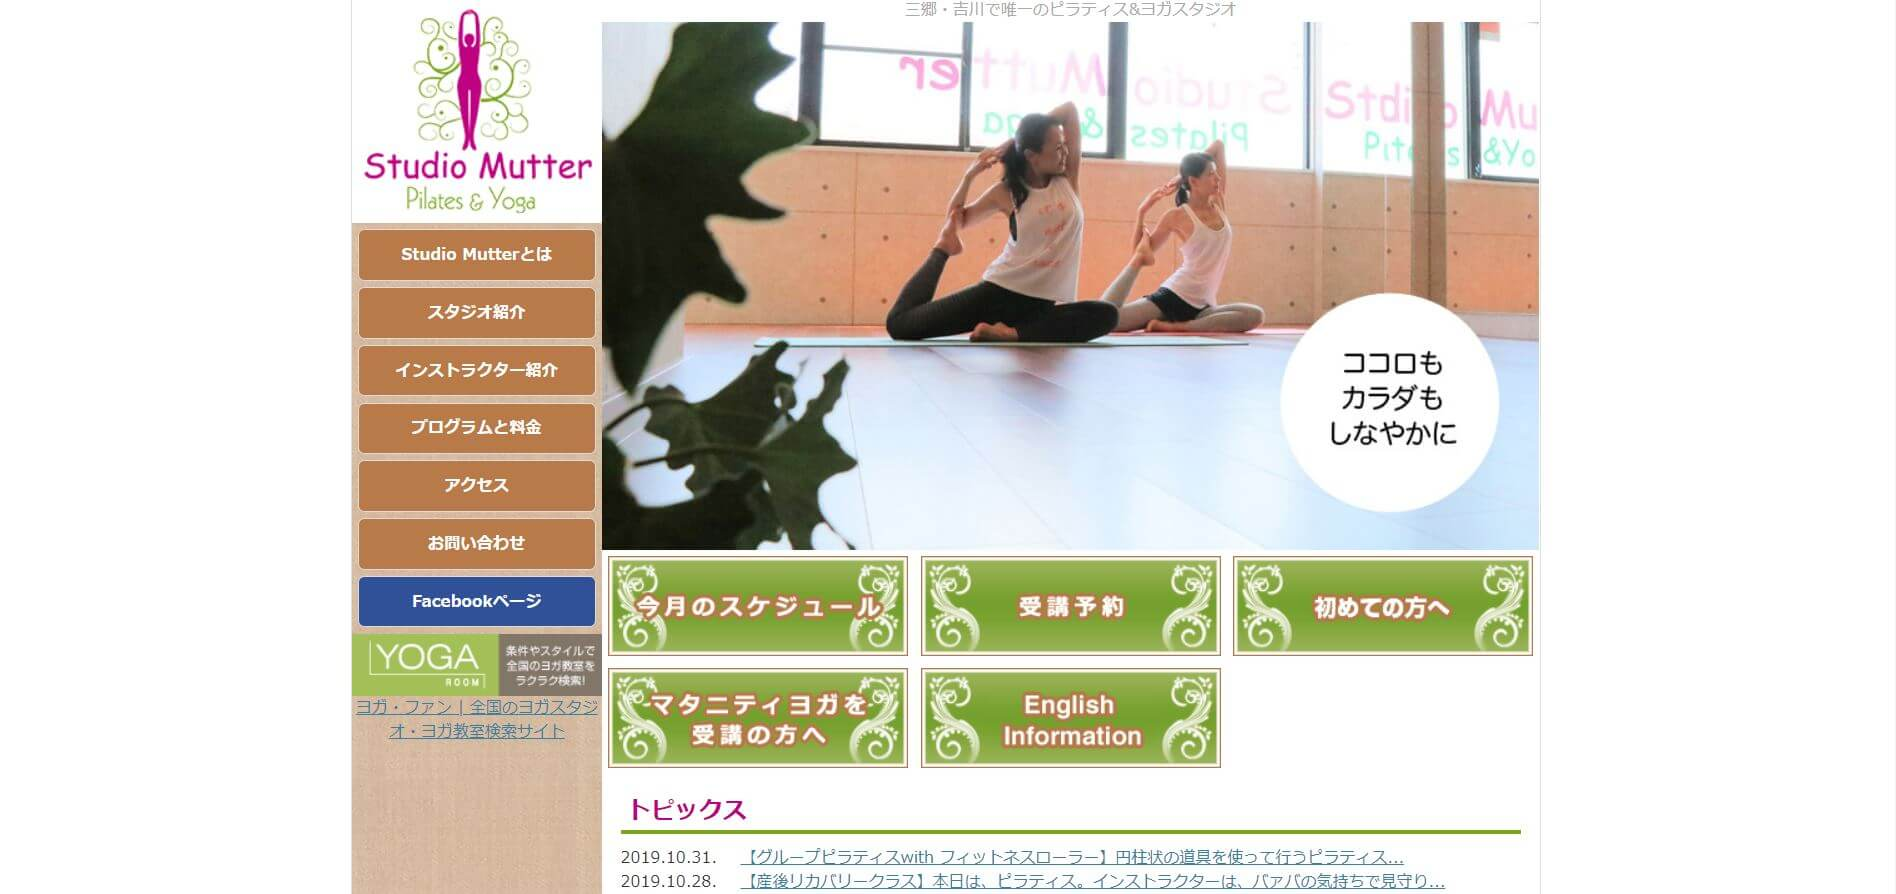 Studio Mutter Pilates&Yoga